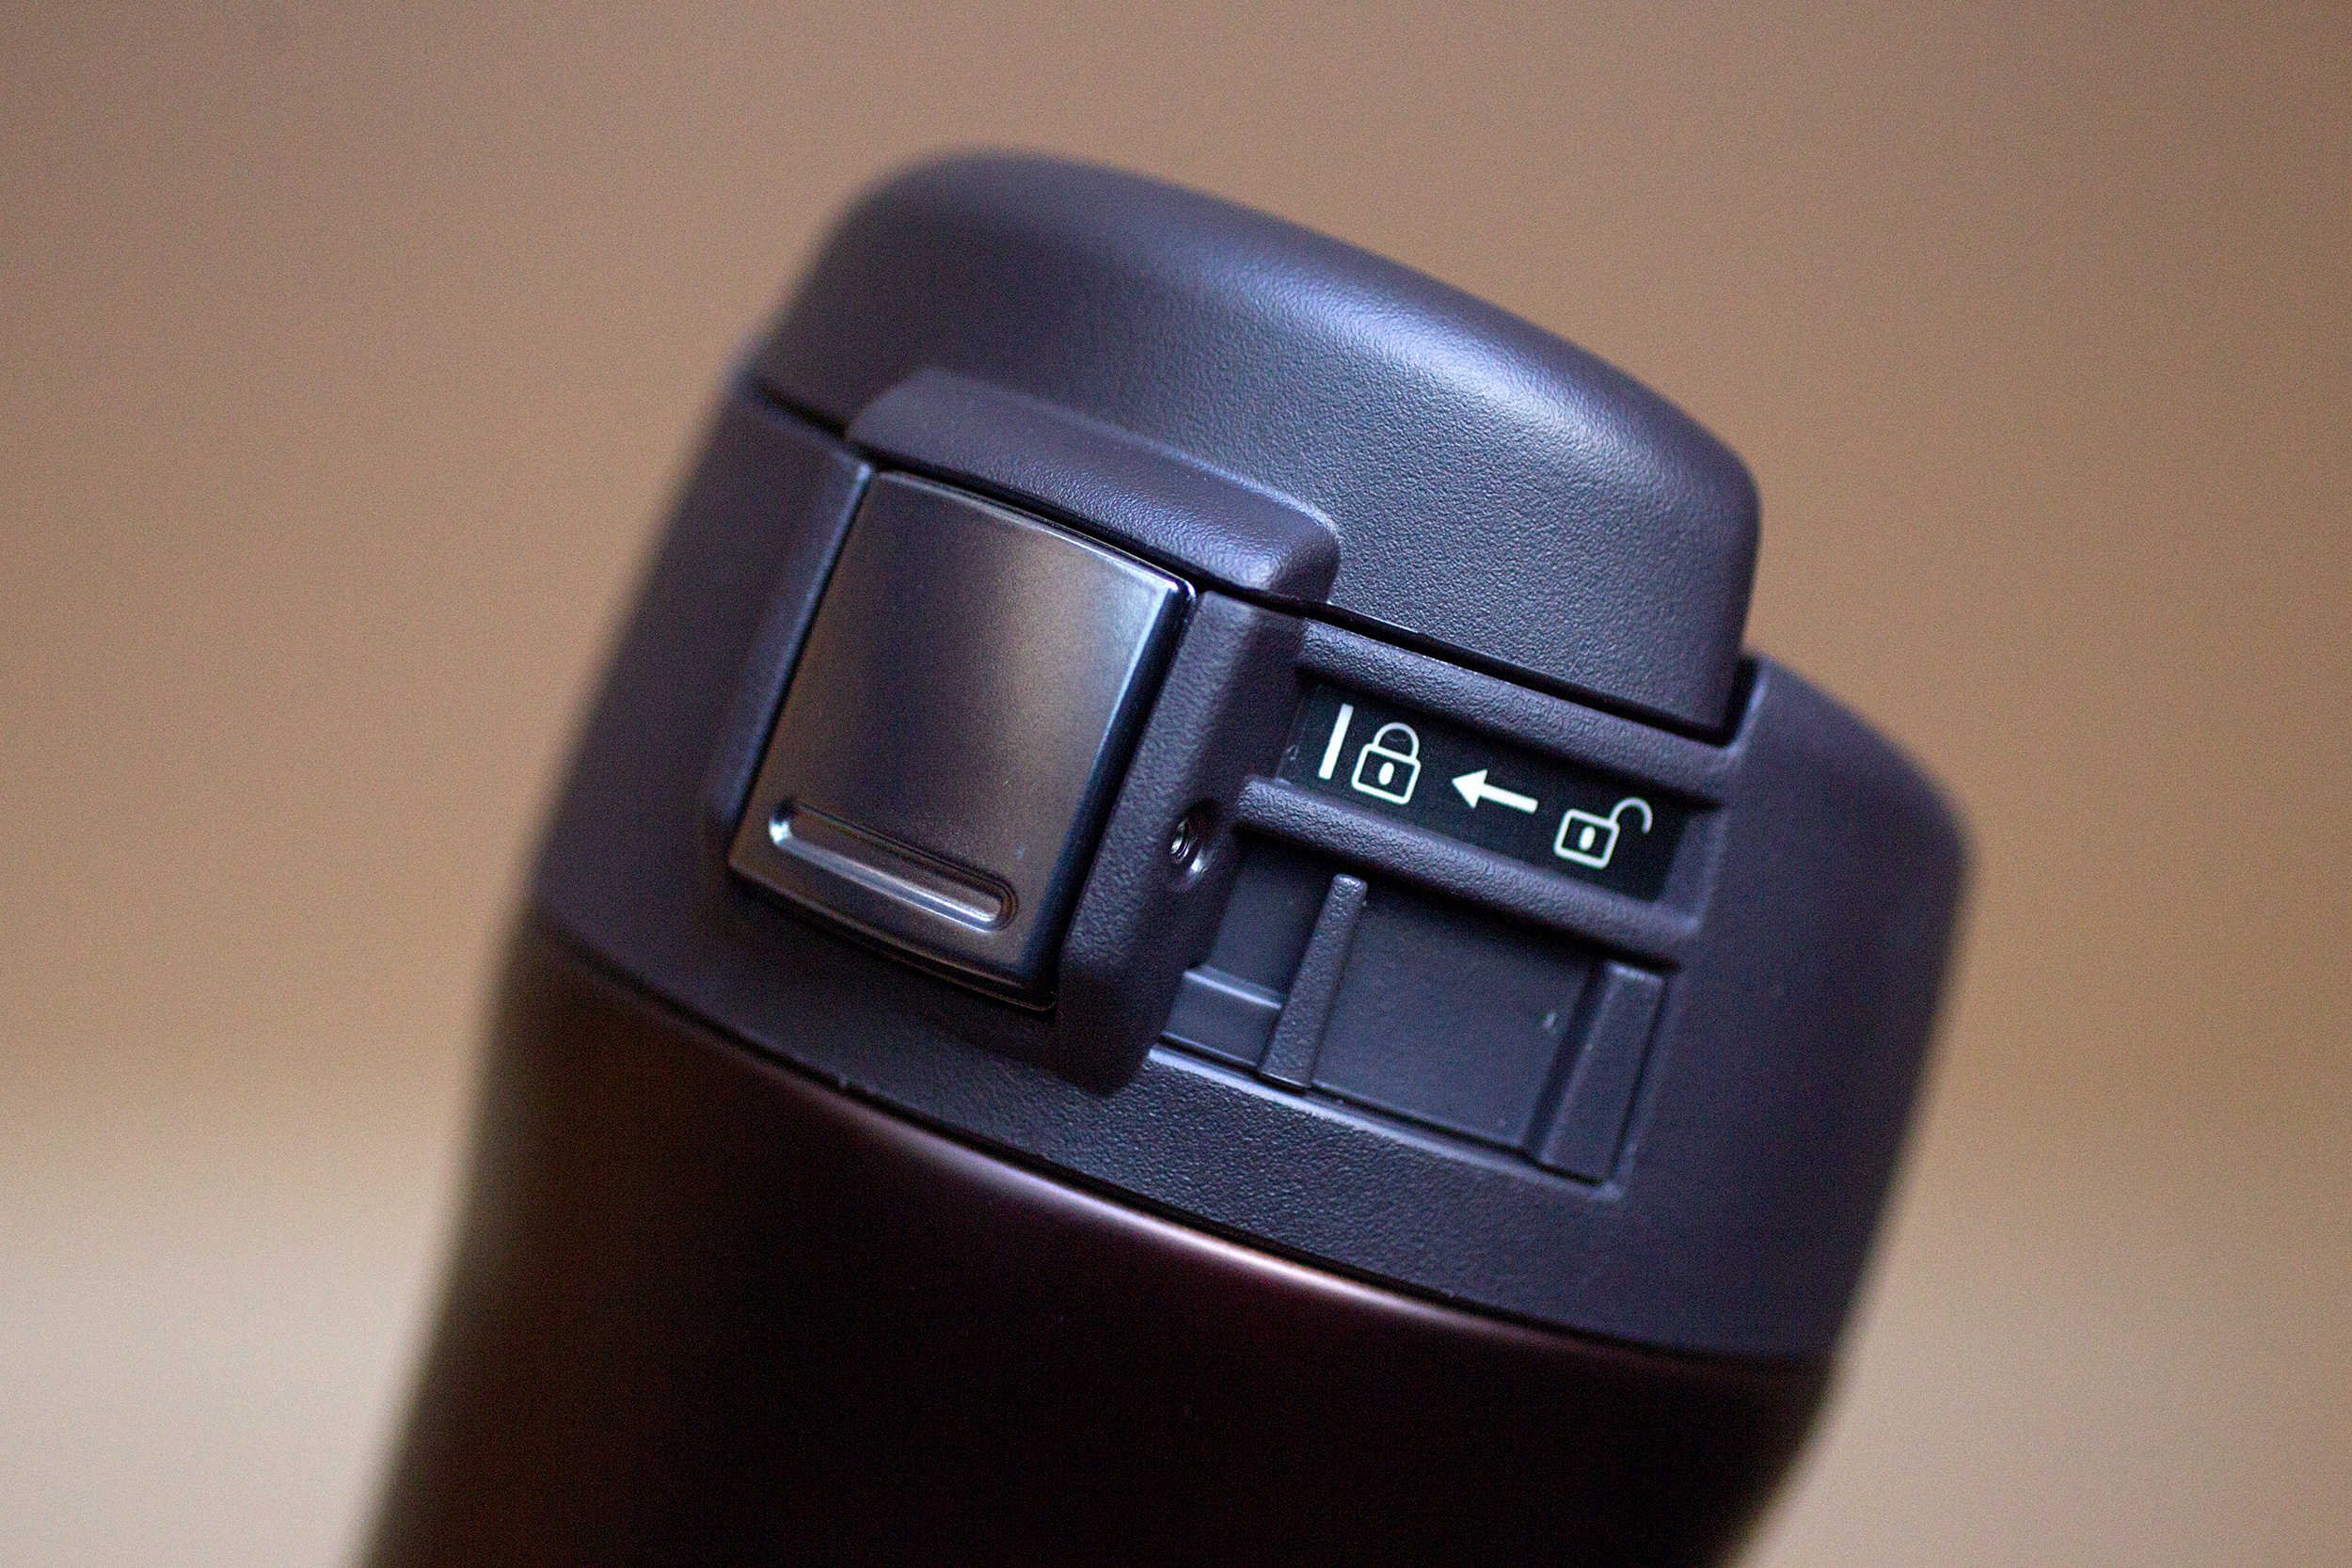 The Zojirushi travel mug will keep your coffee hot and contained.